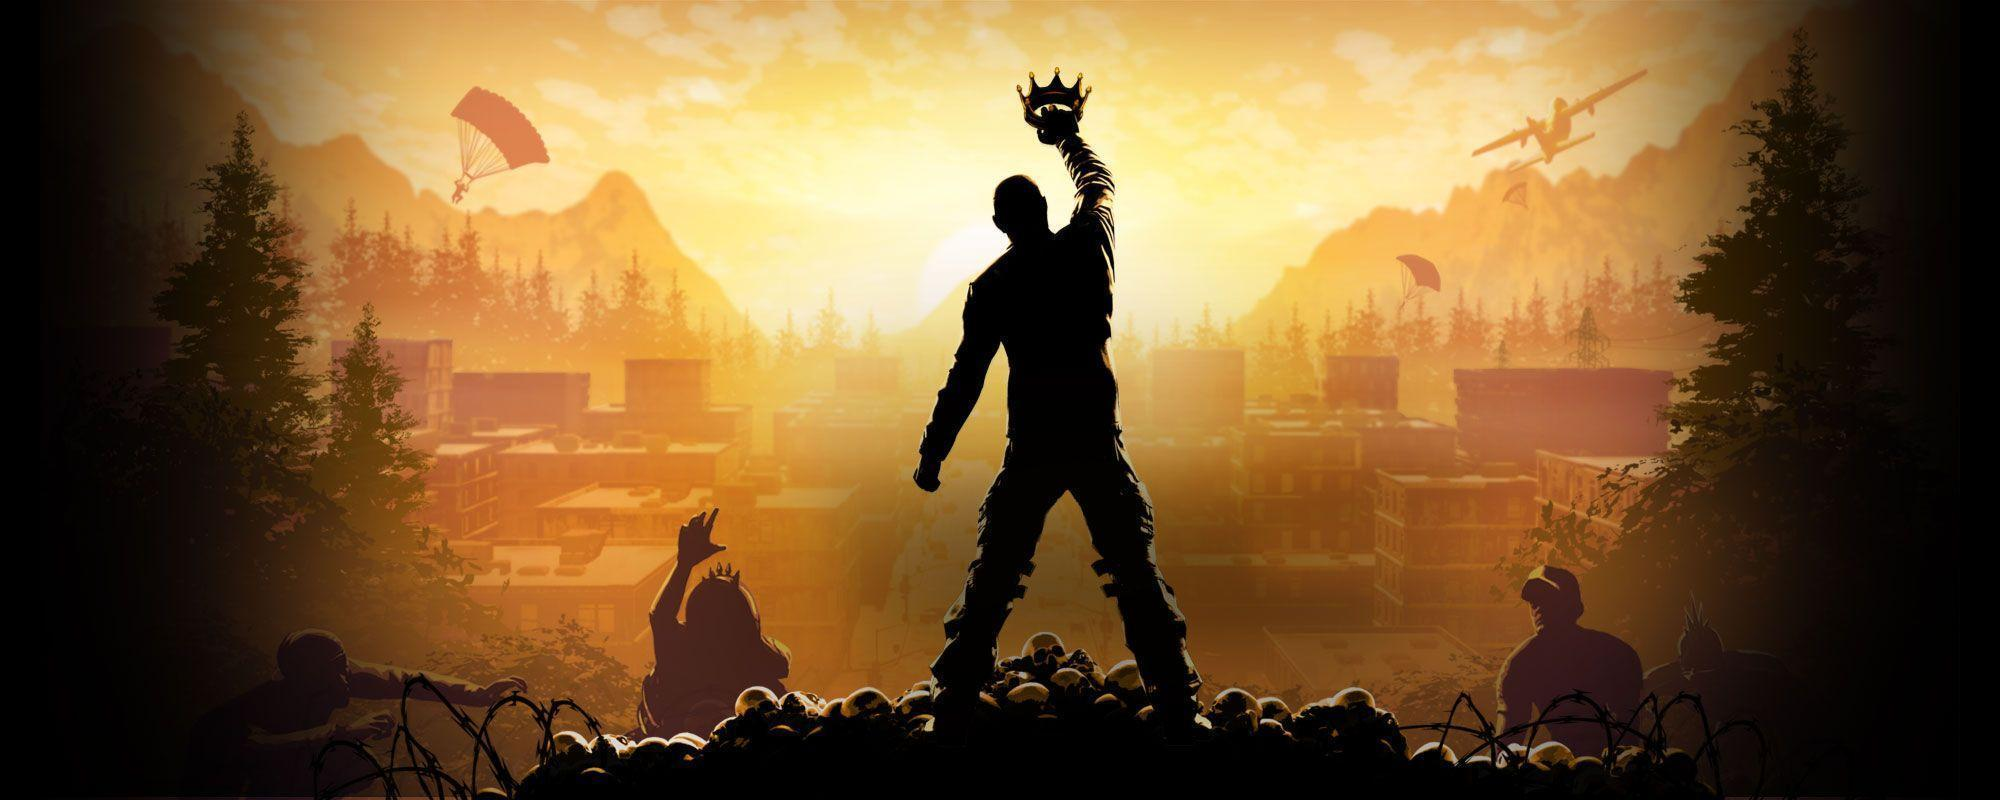 H1Z1: King Of The Kill Wallpapers